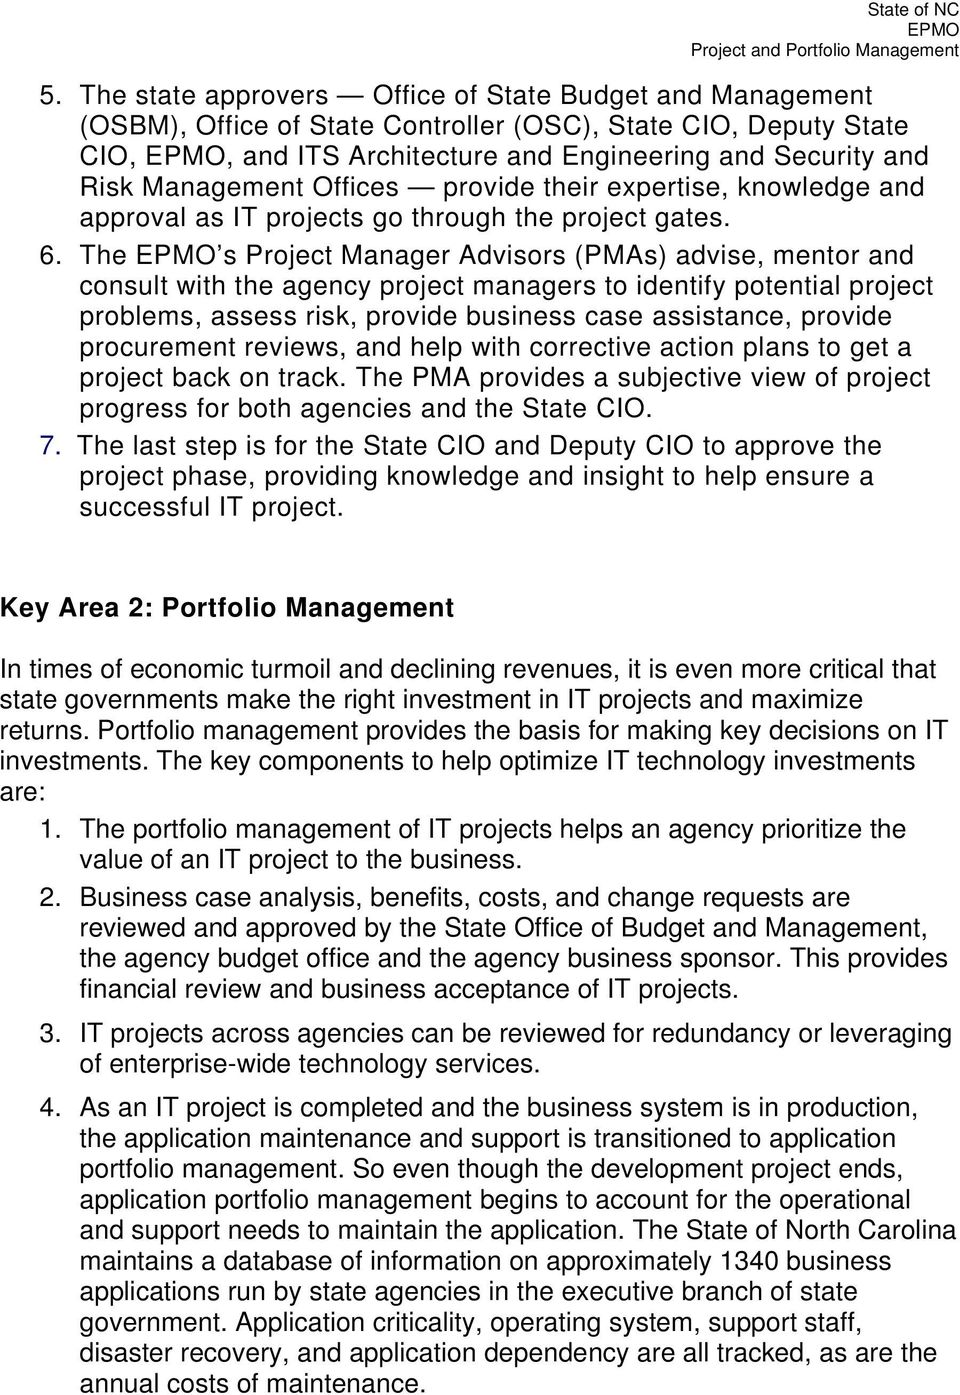 The s Project Manager Advisors (PMAs) advise, mentor and consult with the agency project managers to identify potential project problems, assess risk, provide business case assistance, provide